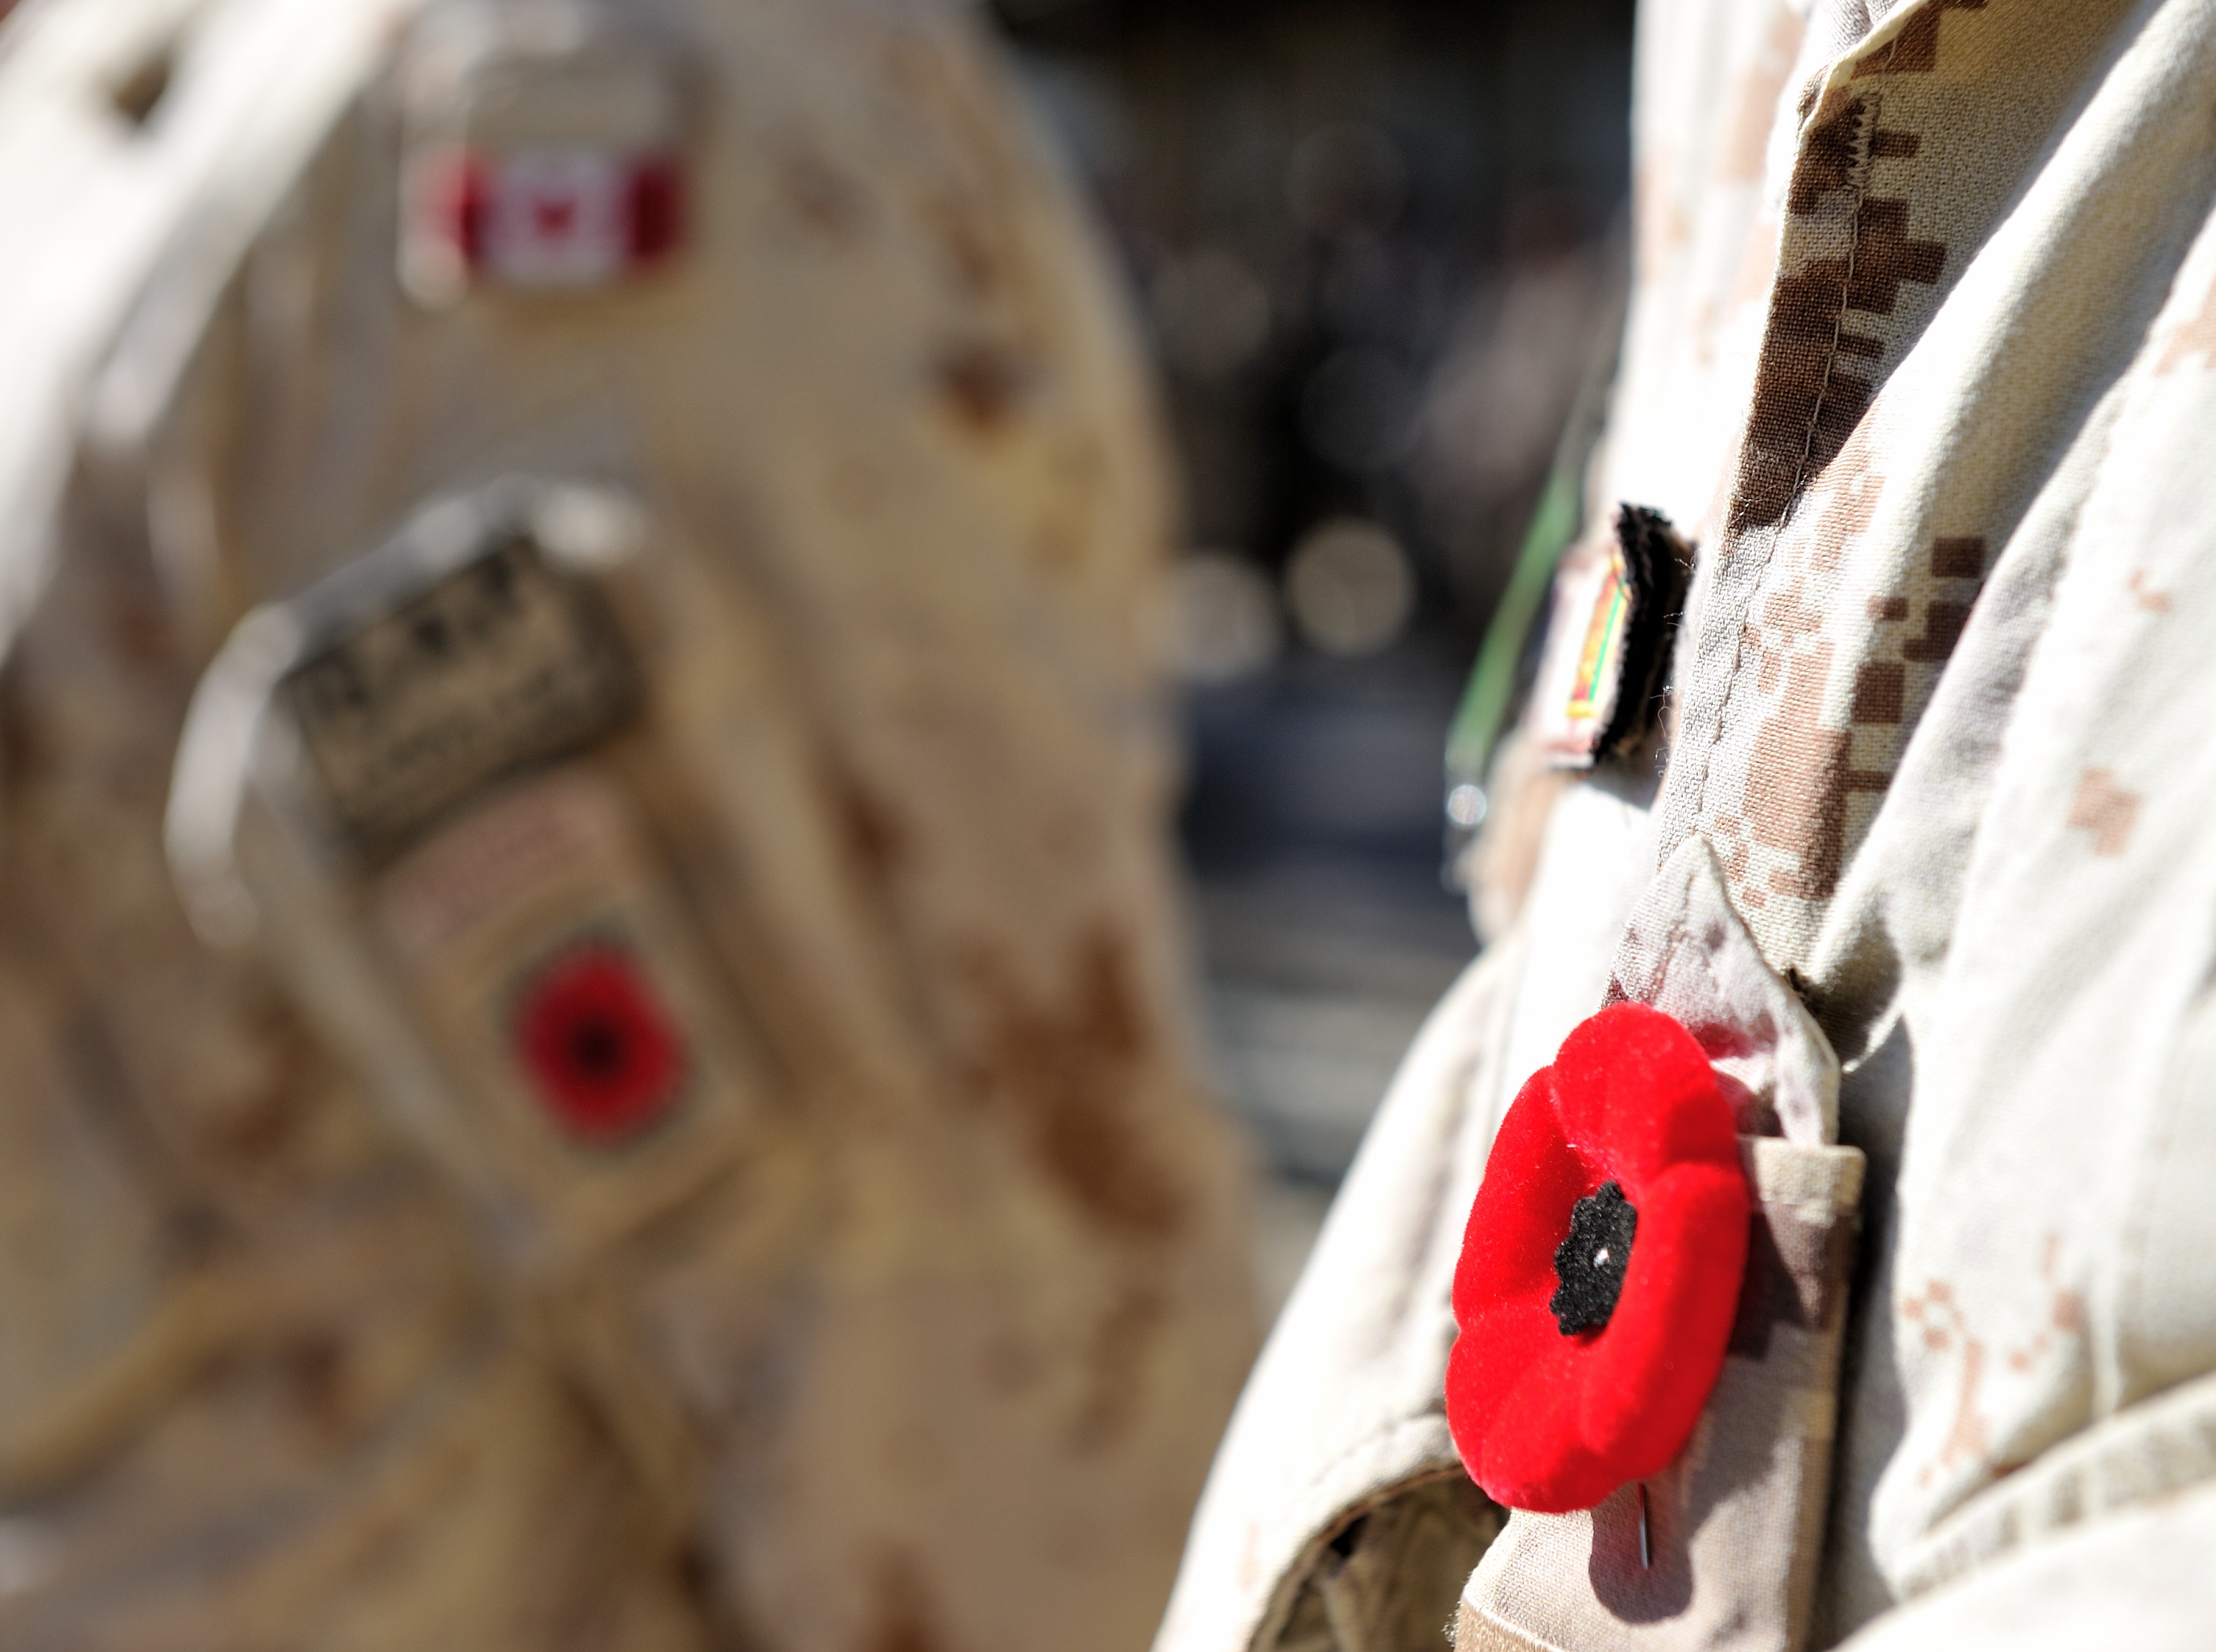 A poppy is pinned on a Canadian Armed Forces soldier's uniform at the final Remembrance Day ceremony held by Canadian soldiers in Afghanistan on November 11, 2013.